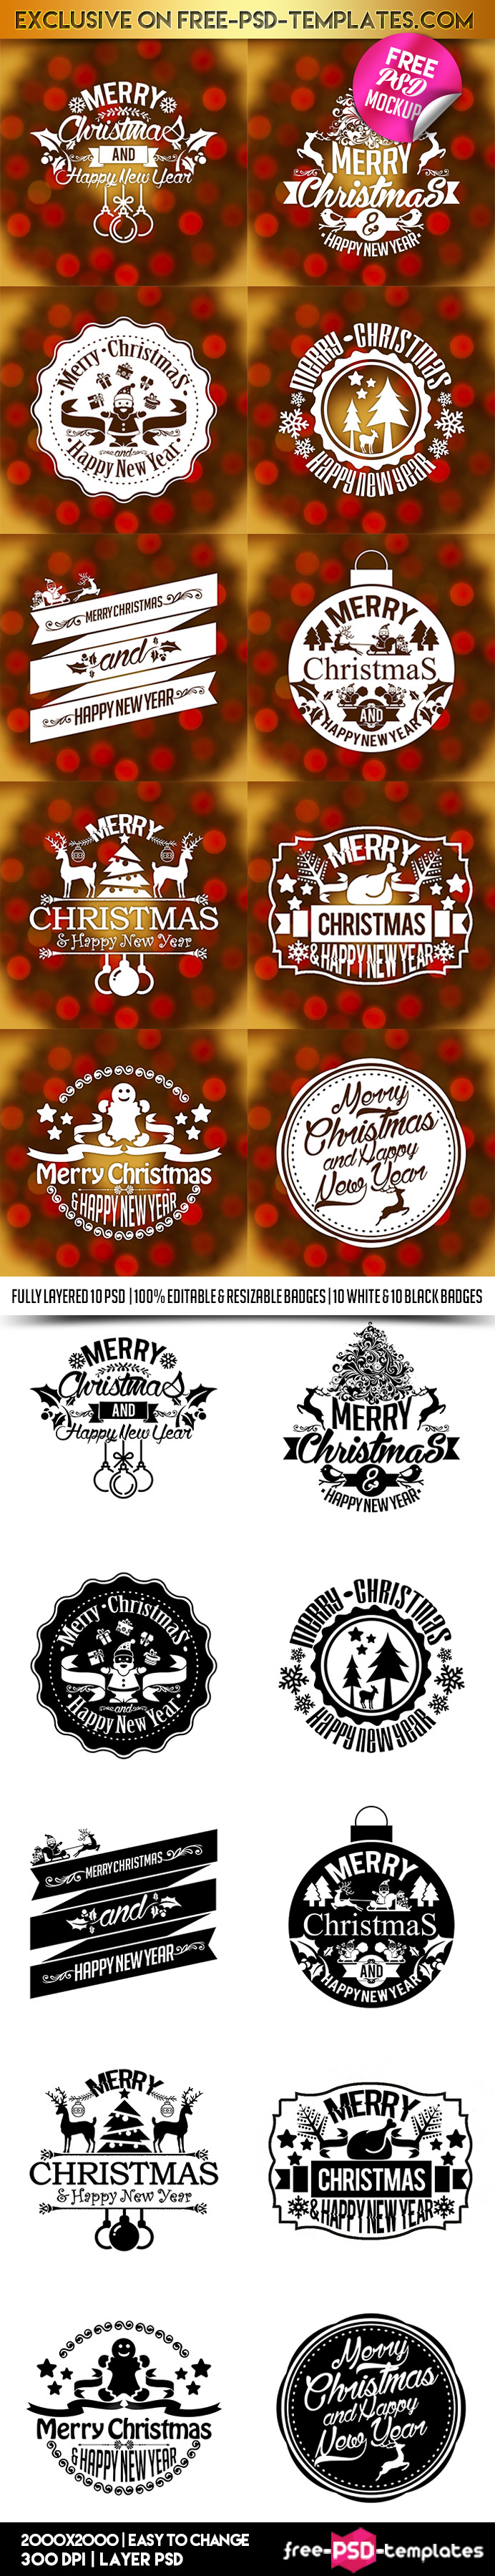 10-Free-Christmas-New-Year-Vintage-Labels-Stickers